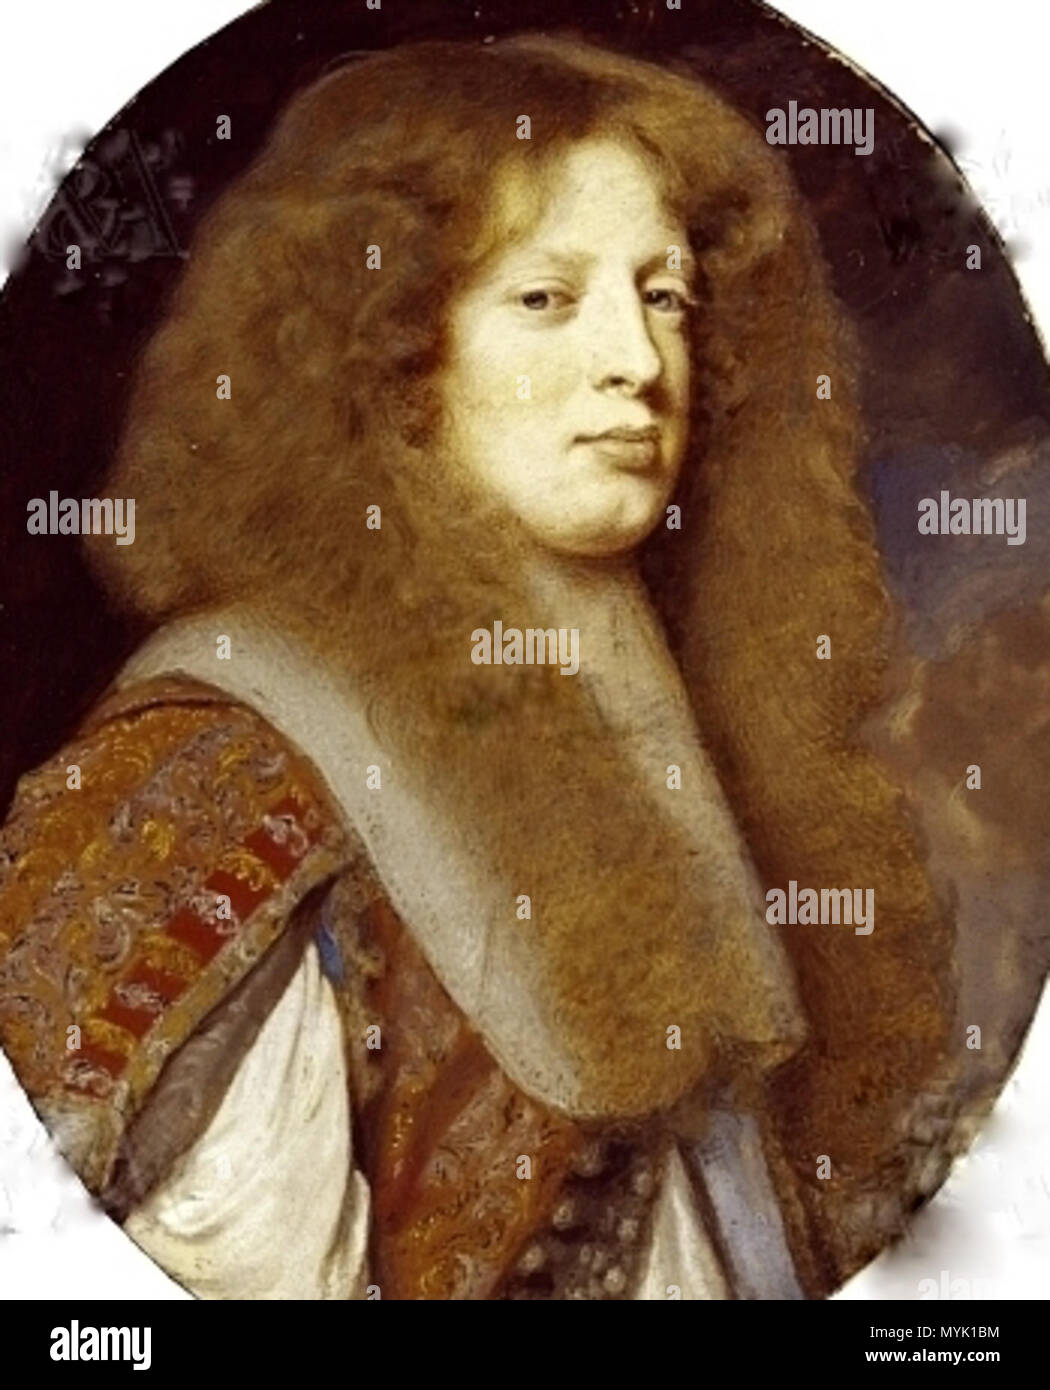 . English: Anthony Ashley-Cooper, 2nd Earl of Shaftesbury (1652-1699) . circa 1665. Samuel Cooper 328 Lord Ashley - Stock Image